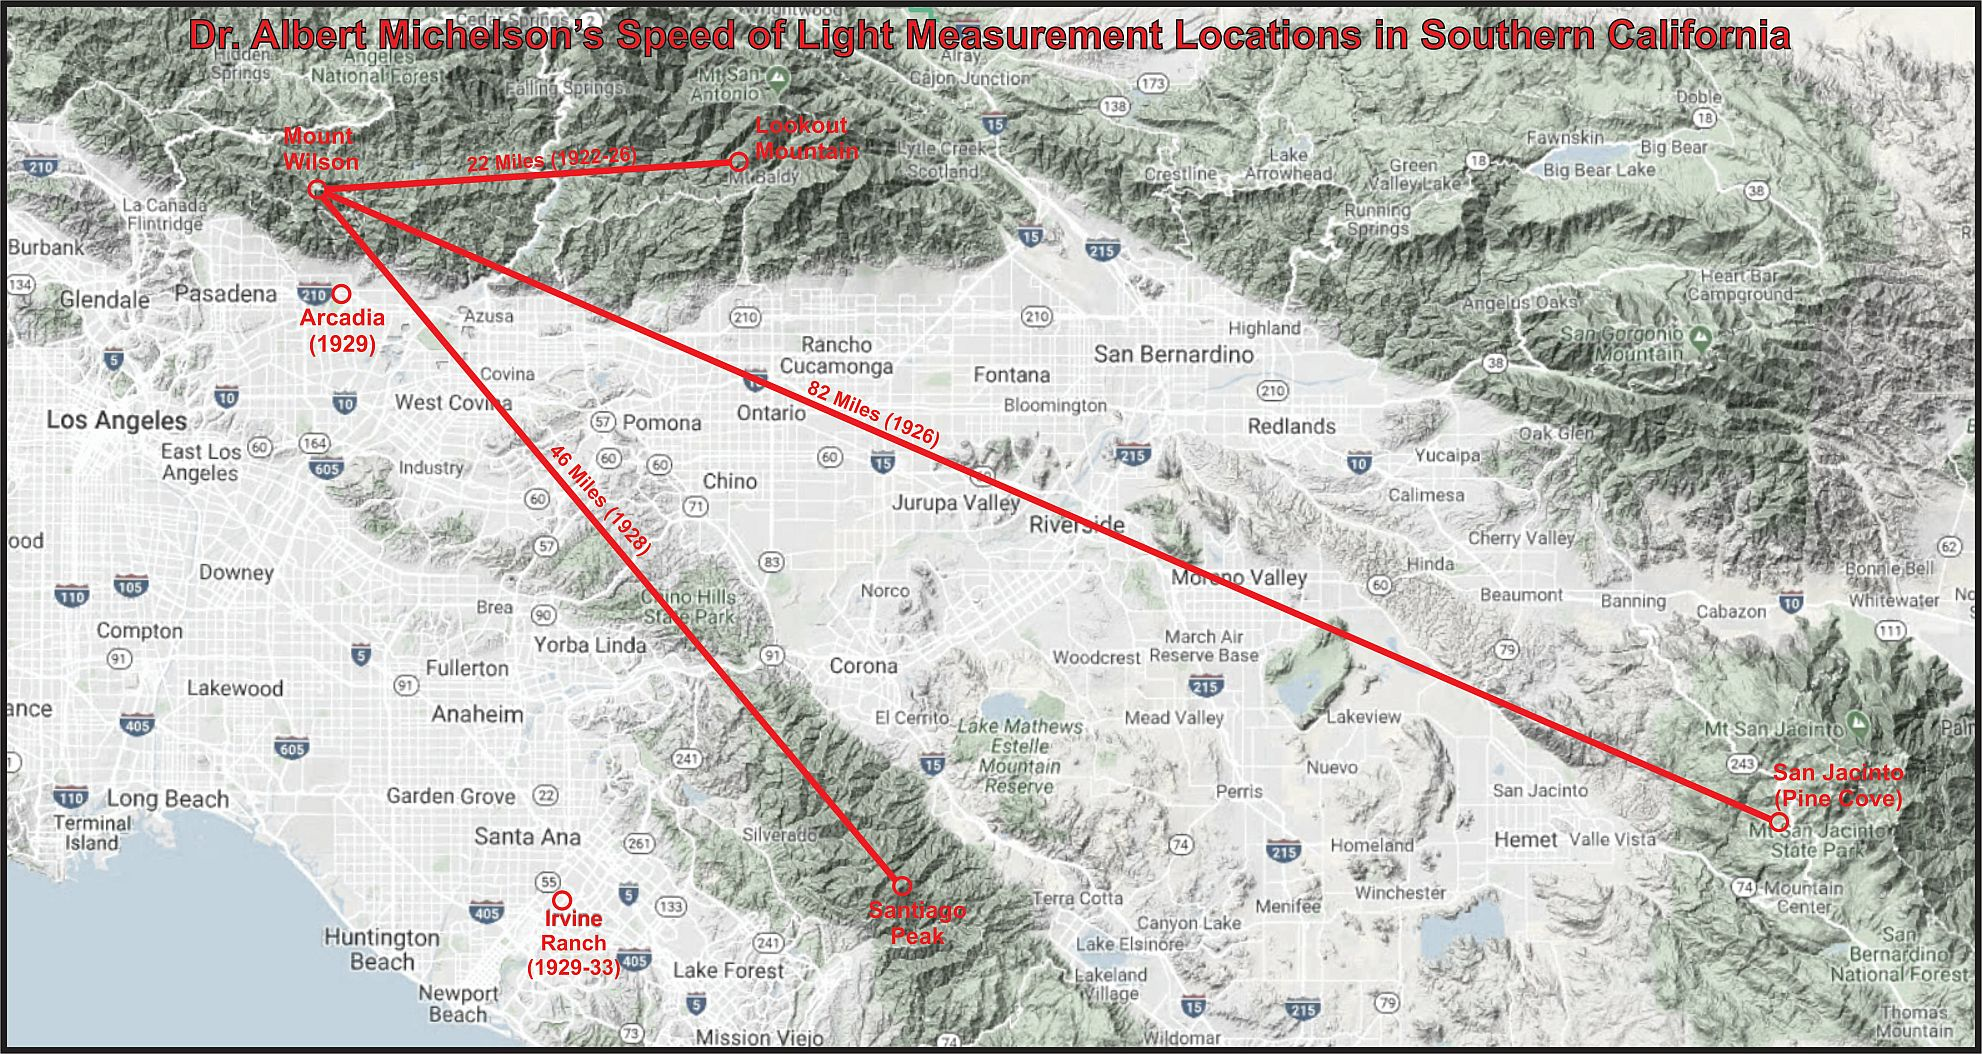 Historic Speed of Light measurements in Southern California